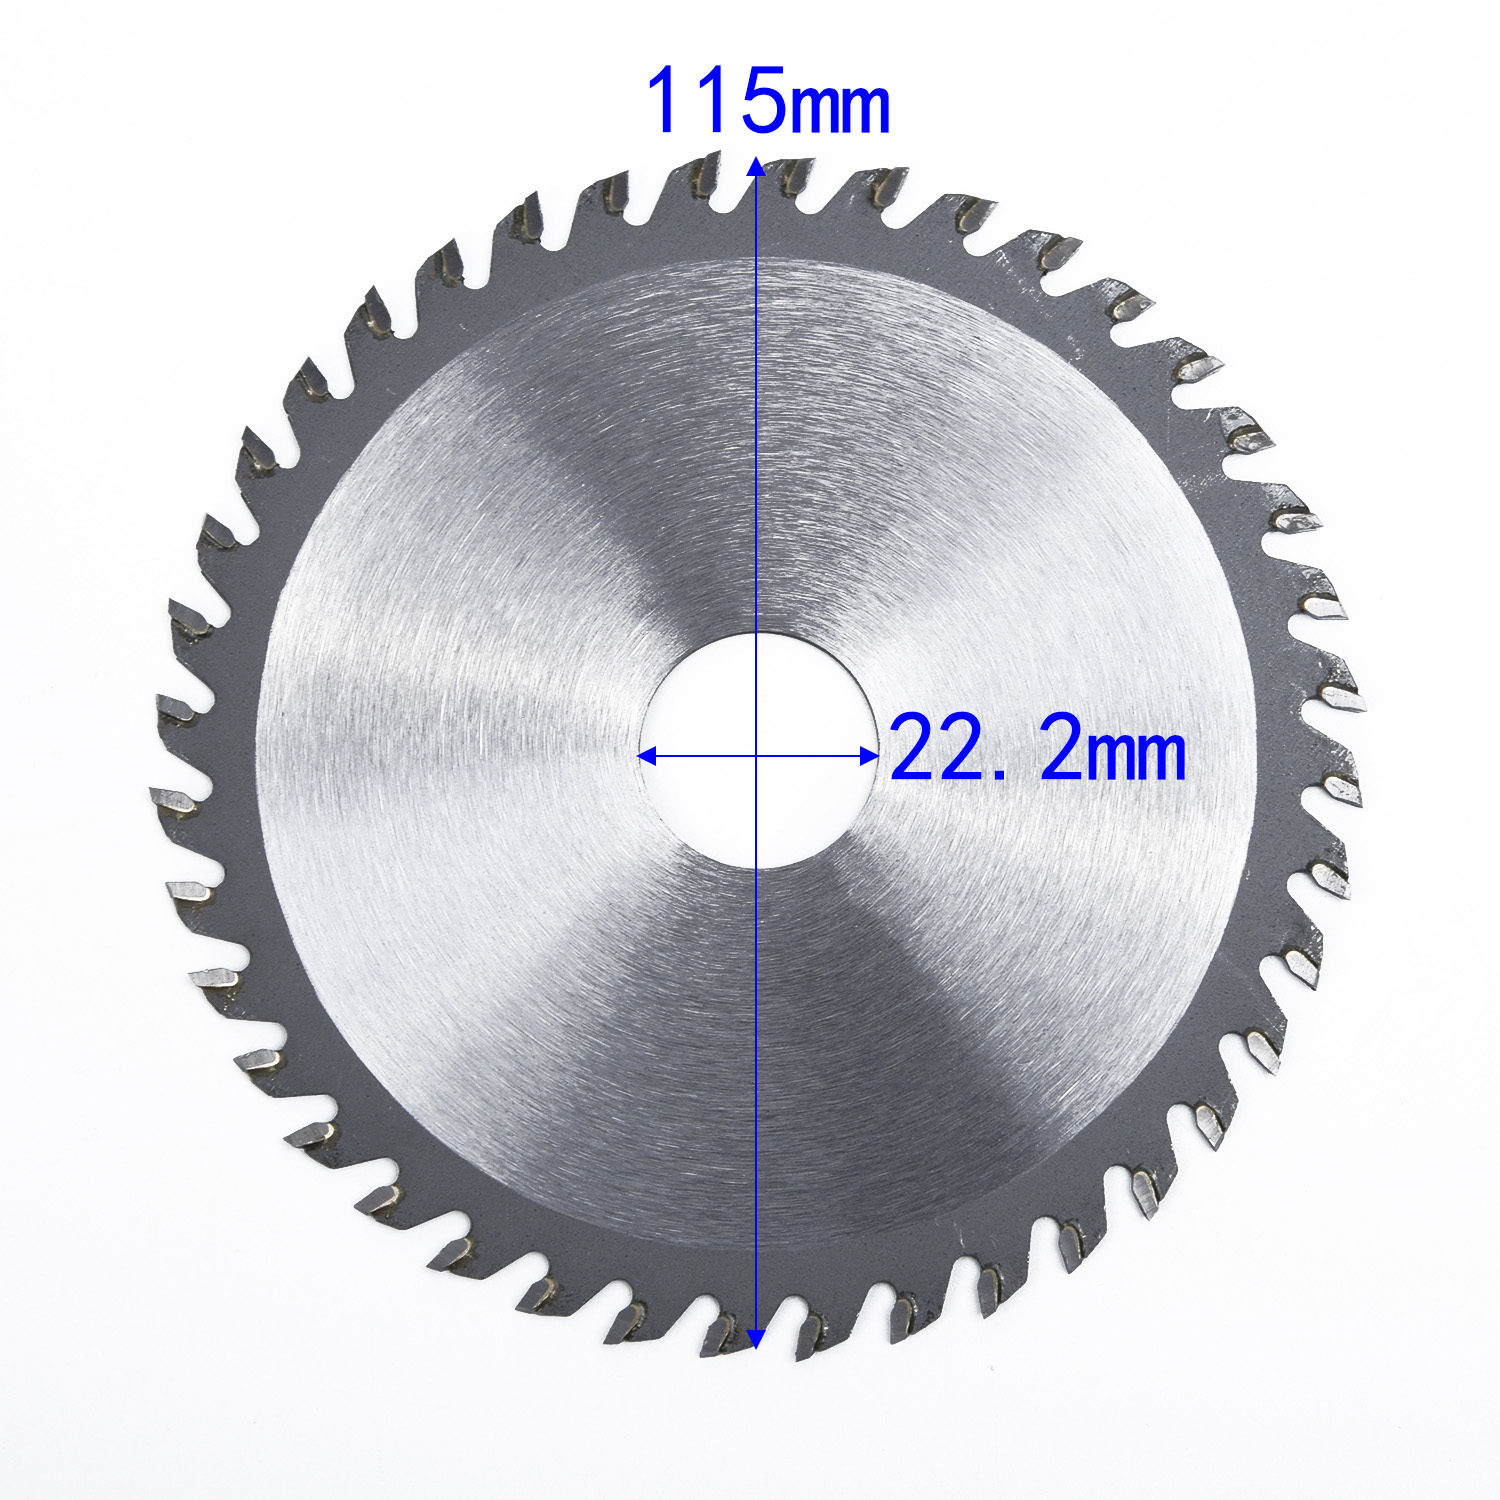 1 Piece 115mm 40 TCT Saw Leave For Cutting Wood Woodworking Plastic Teeth Angle Grinder Circular Saw Blades